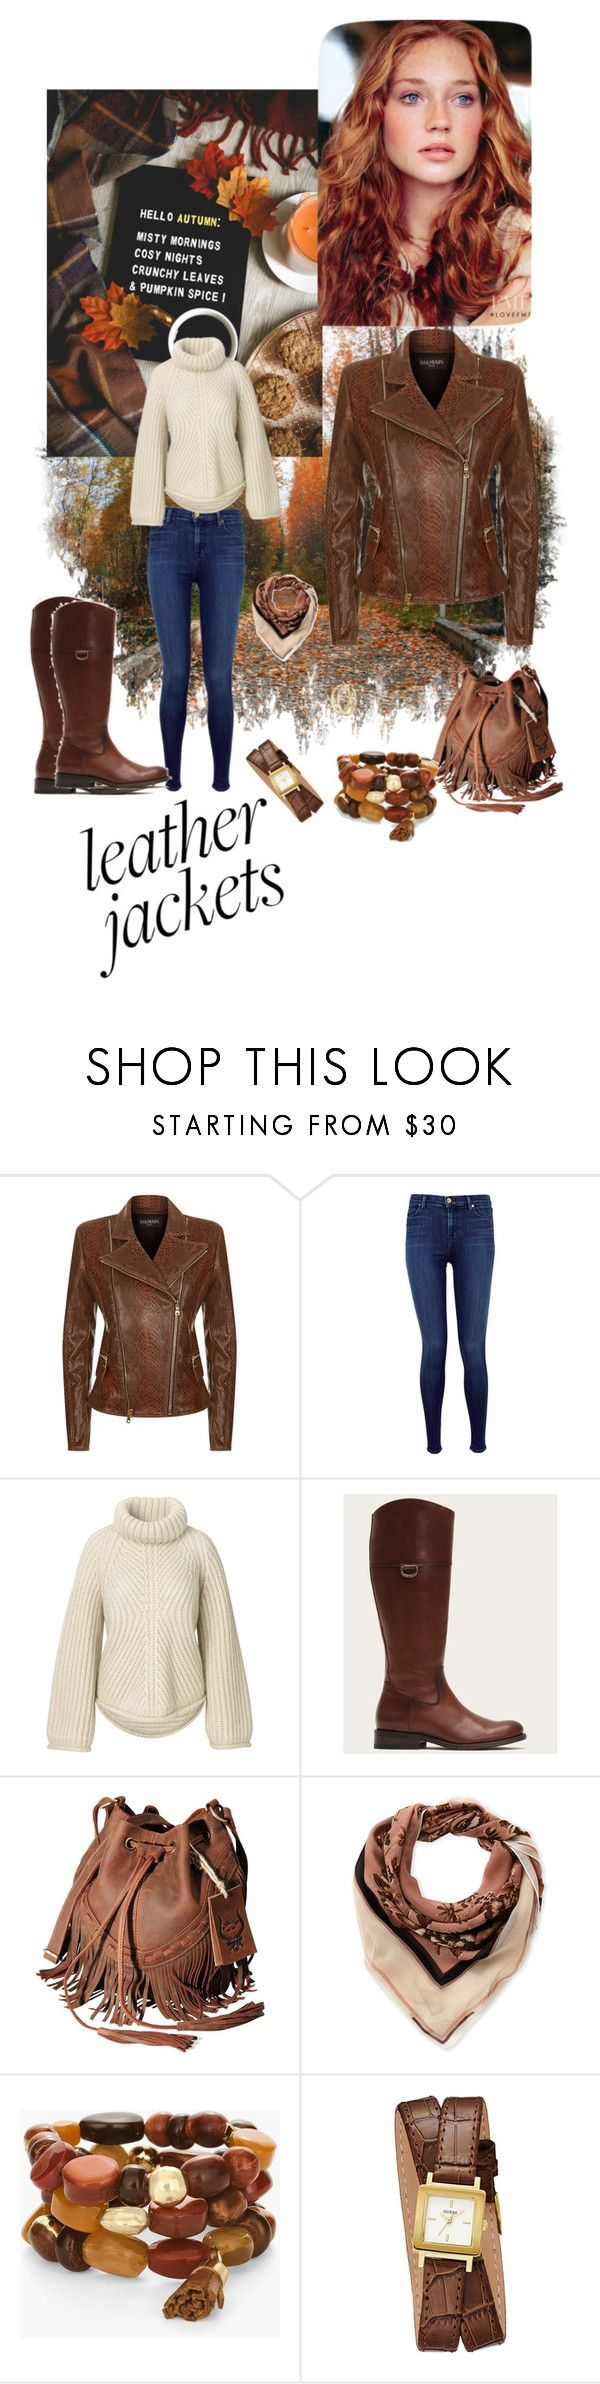 """""""Leather jackets"""" by cindy-allaby ❤ liked on Polyvore featuring Balmain, J Brand, Frye, Vince Camuto, Chico's, GUESS and Charlotte Russe"""